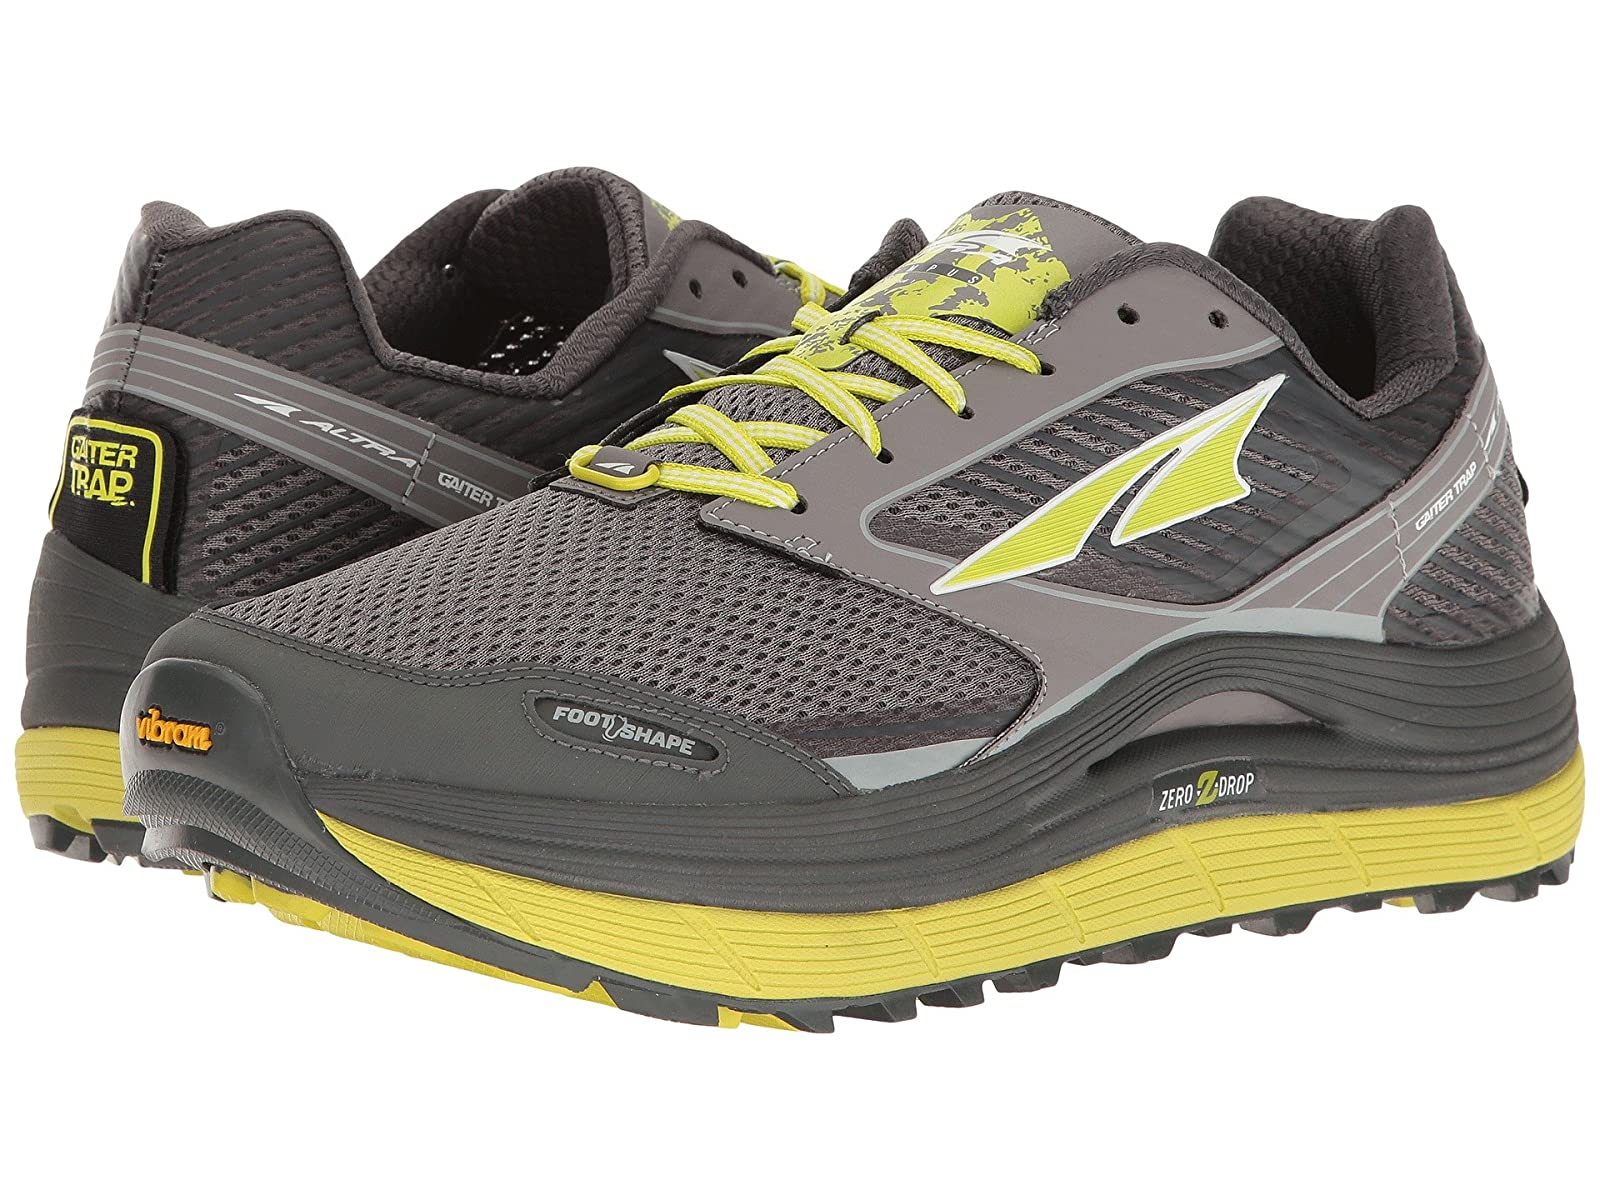 Altra Footwear Olympus 2.5Cheap and distinctive eye-catching shoes